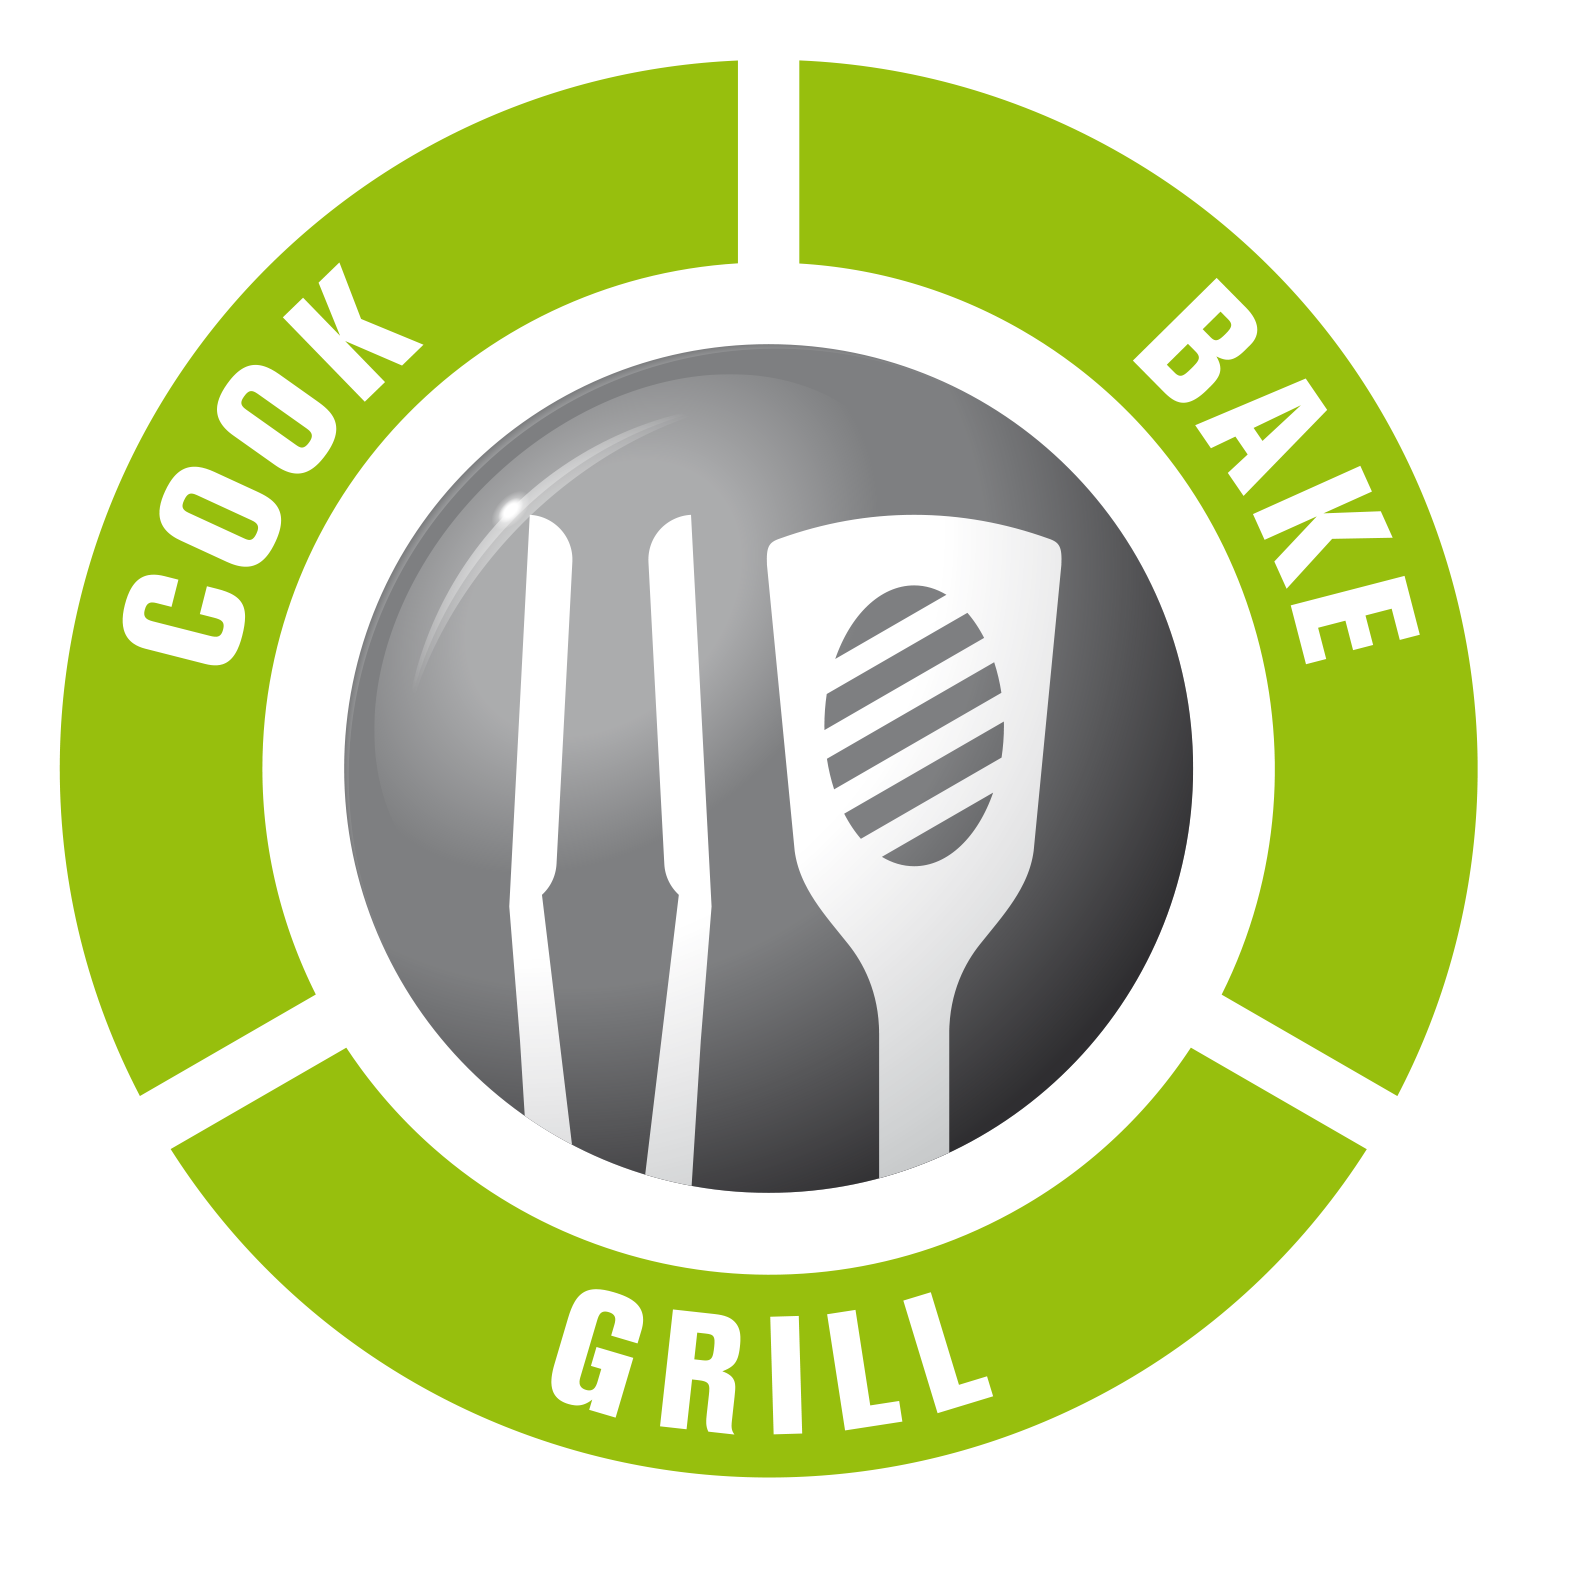 Grill, Cook, Bake - Outdoorchef